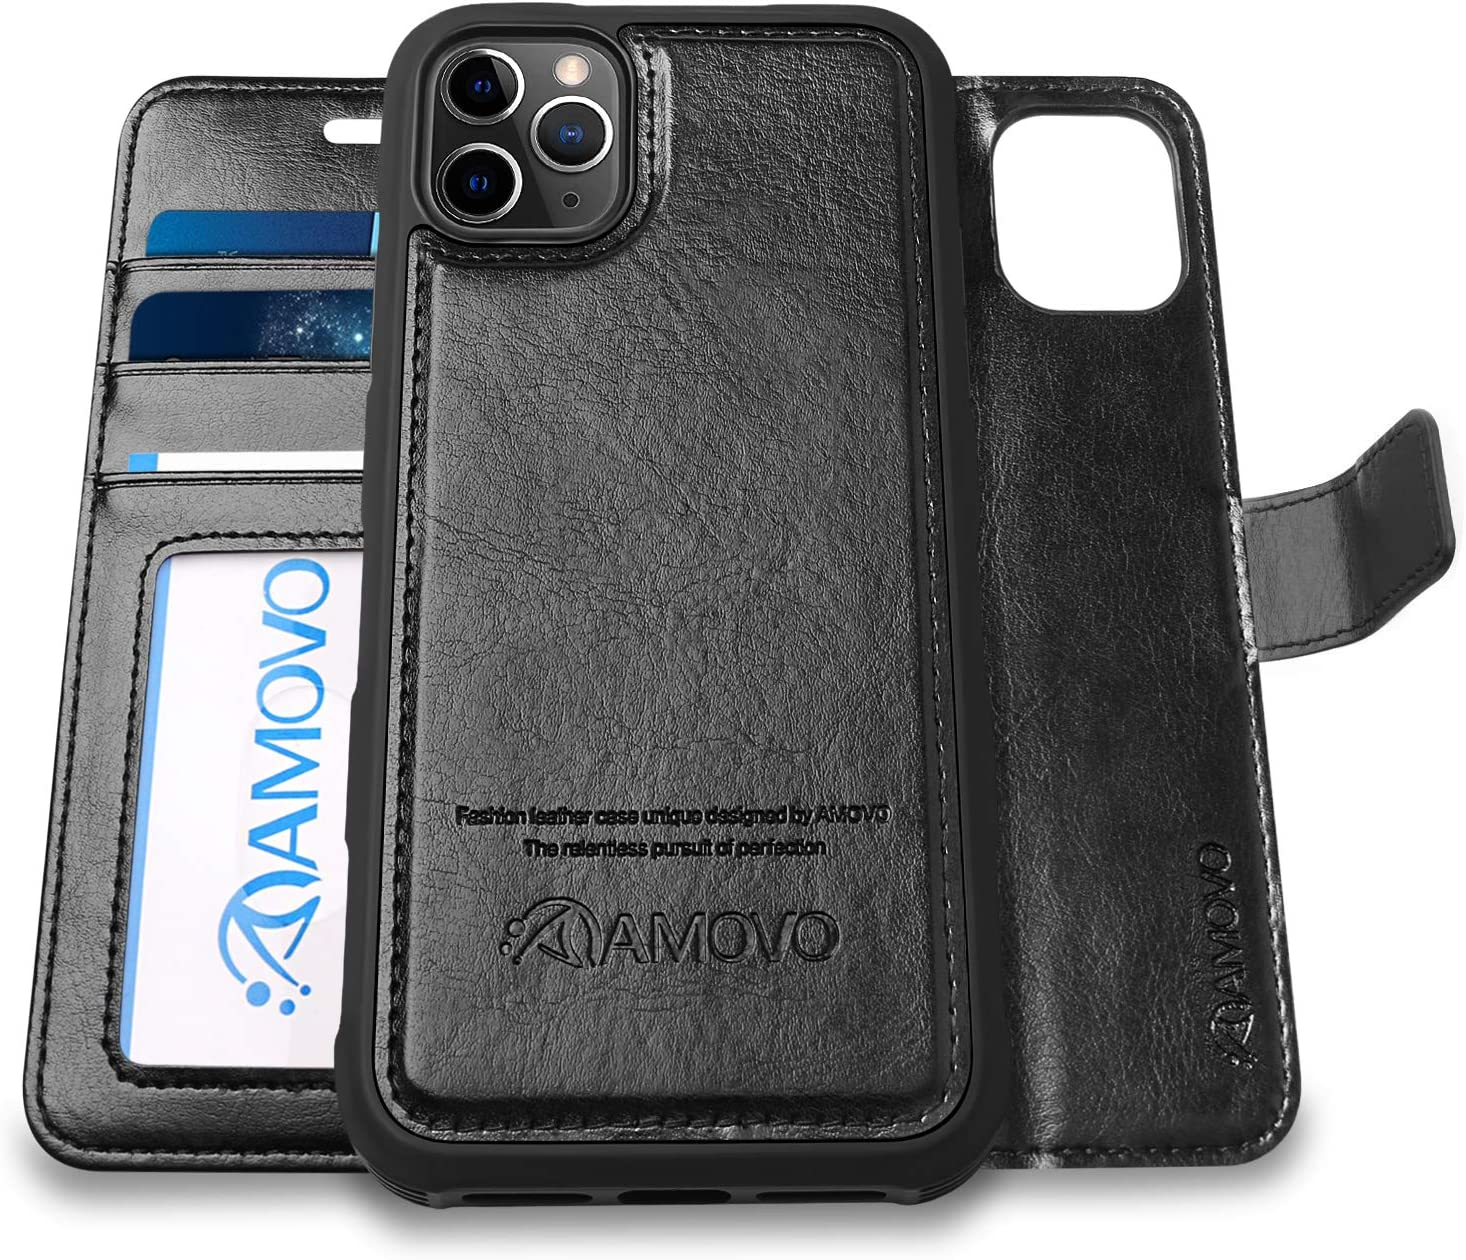 AMOVO Case for iPhone 11 Pro (5.8'') [2 in 1] iPhone 11 Pro Wallet Case Detachable [Vegan Leather] [Hand Strap] [Stand] iPhone 11 Pro Flip Folio Case Cover (Black)